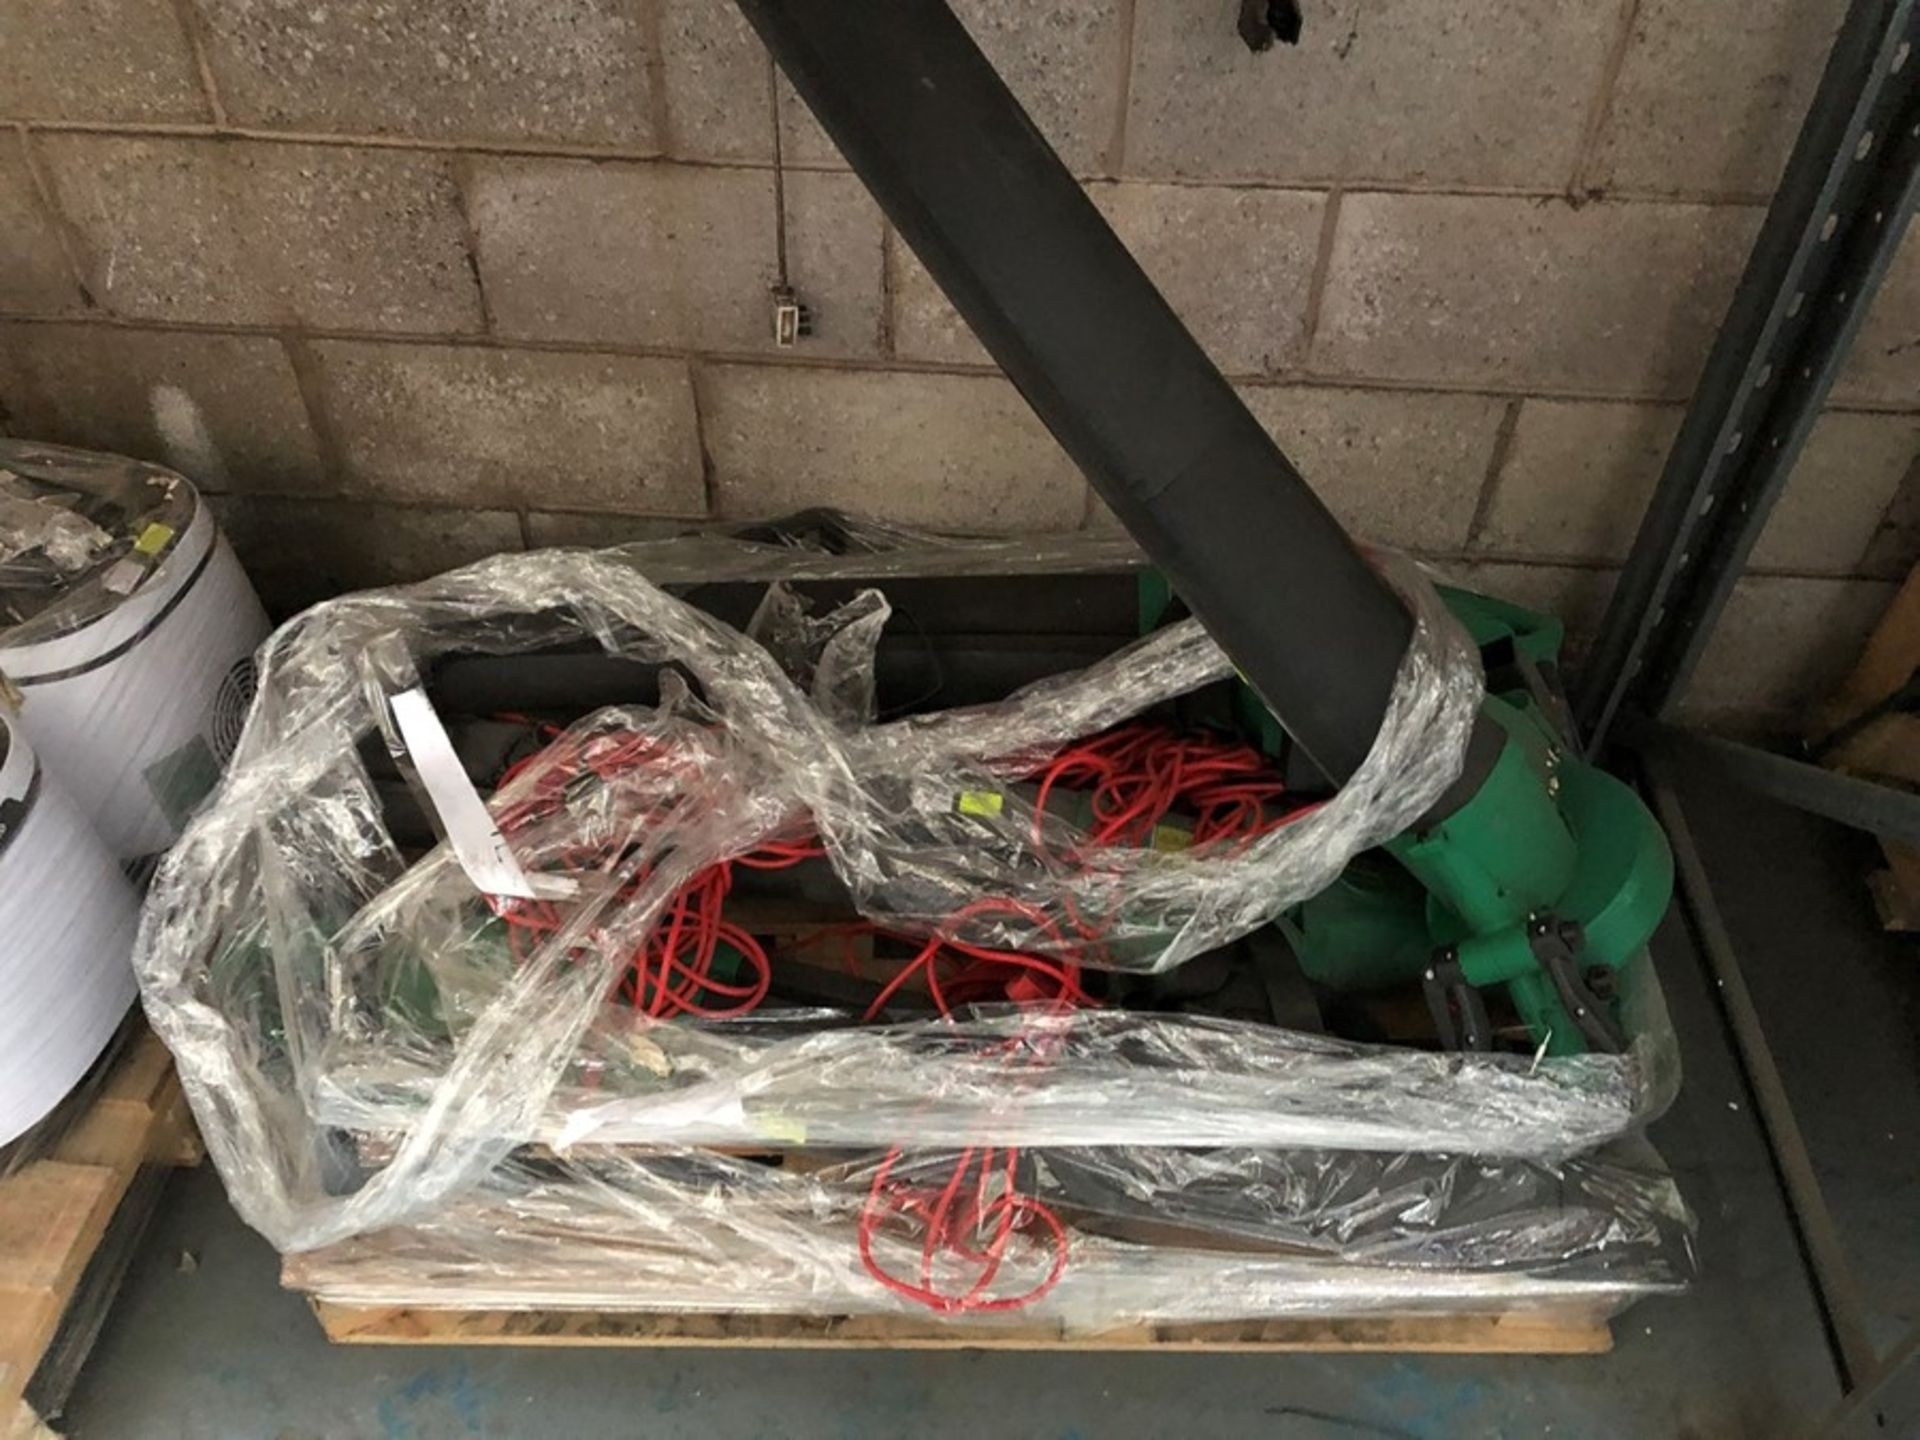 Lot 15 - 1 LOT TO CONTAIN AN ASSORTMENT OF CORDED LEAF BLOWERS (SOLD AS SEEN)